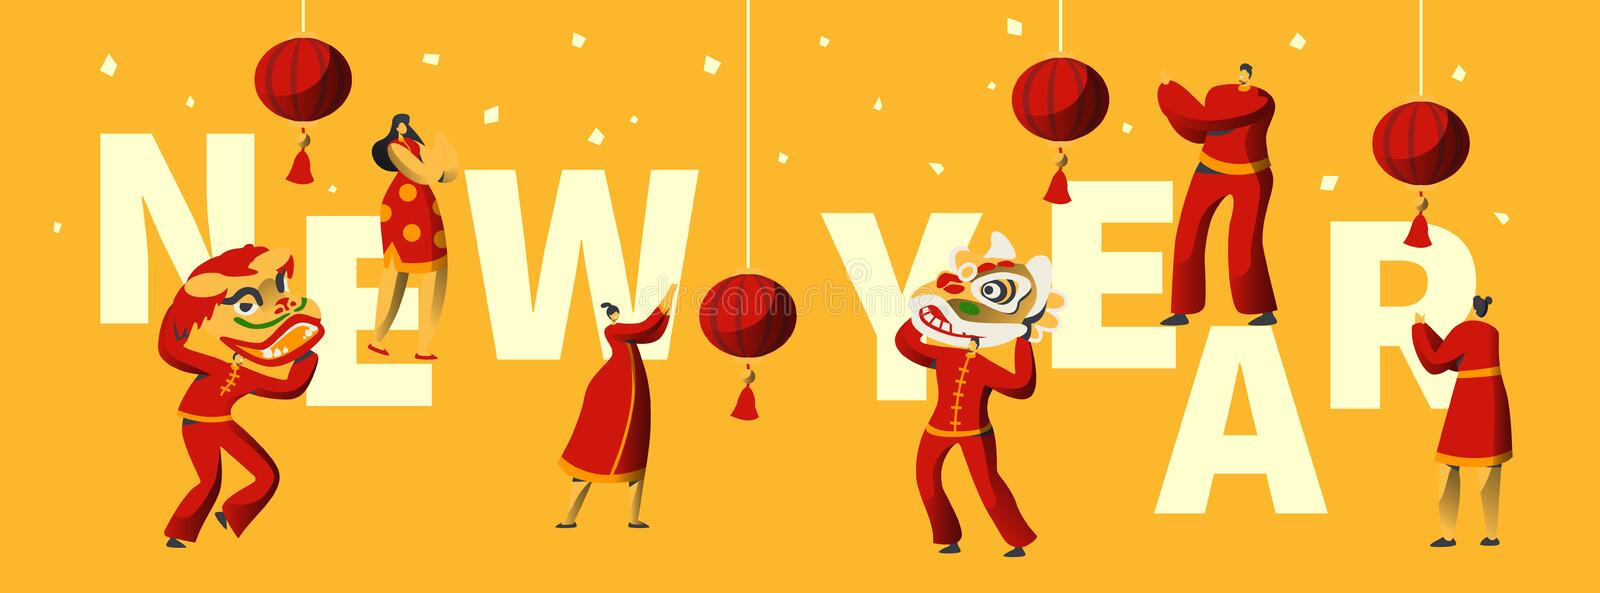 Chinese New Year Festival Typography Banner. Man Dance in Red Dragon Mask for China Holiday Celebration. Asian Festival stock illustration